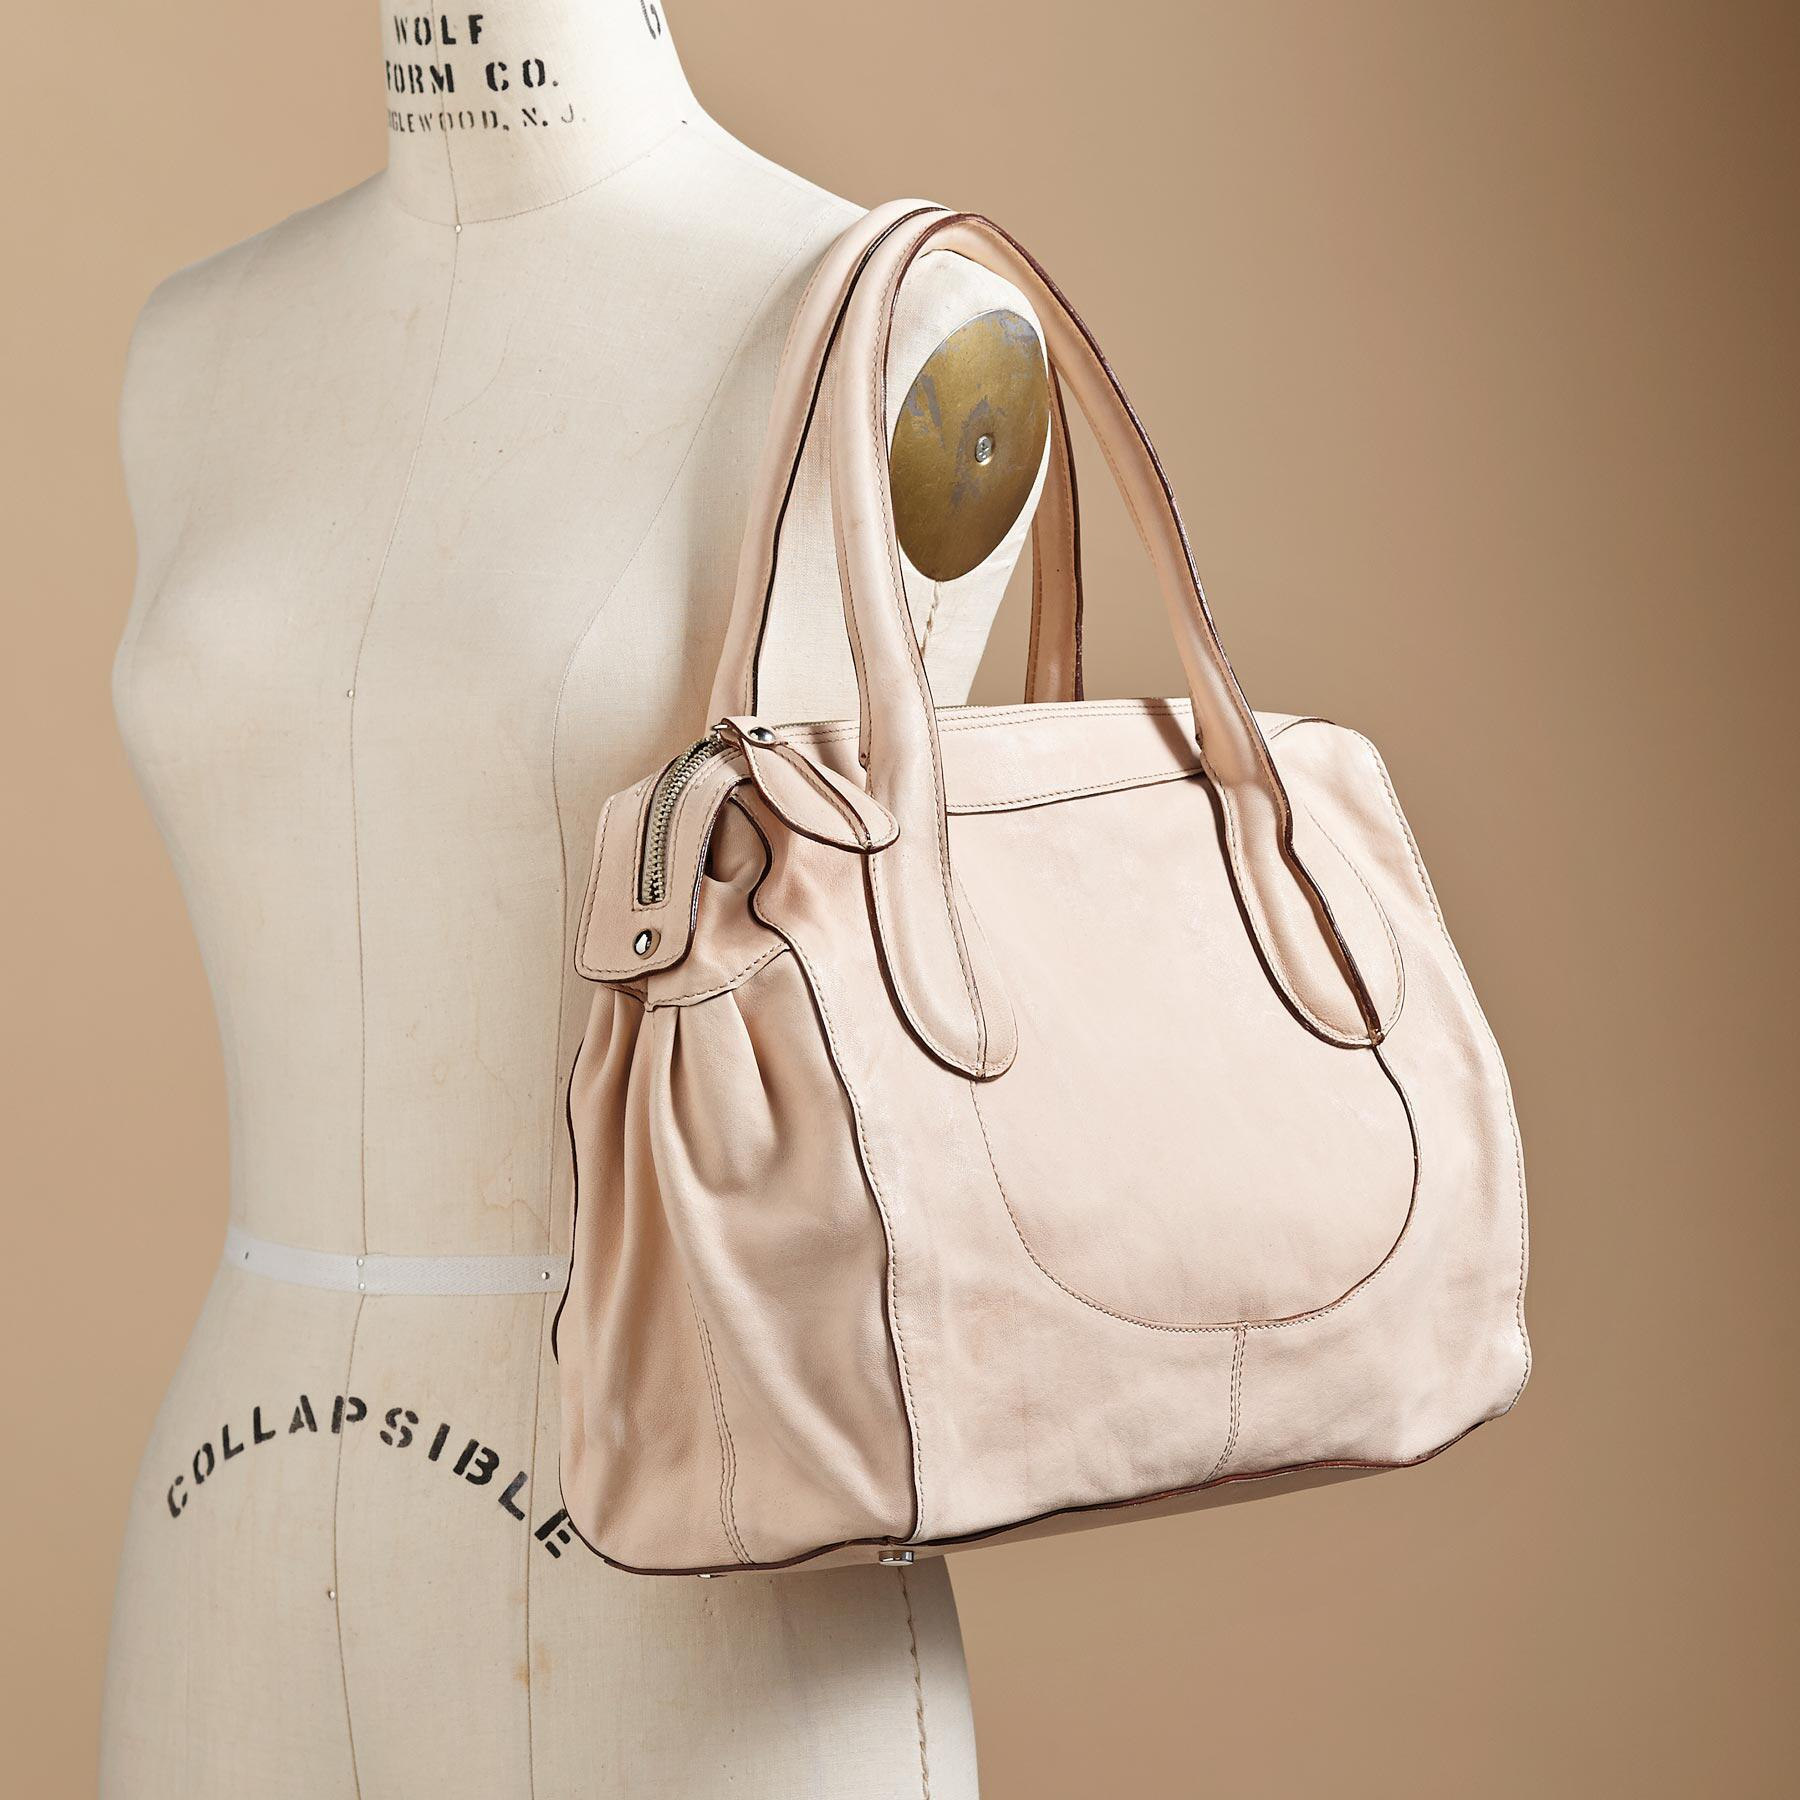 SIMPLY STYLISH HANDBAG: View 4